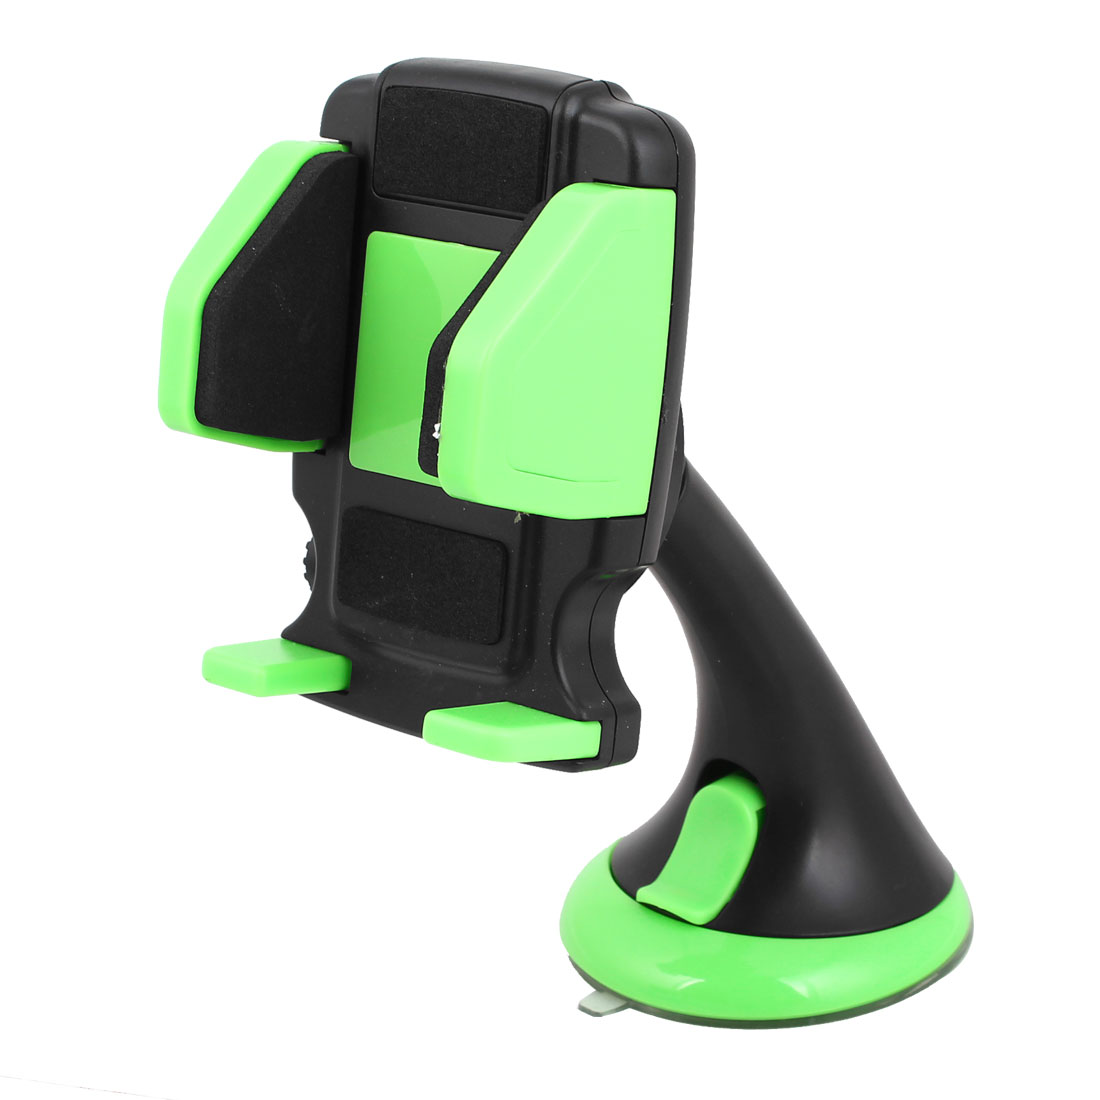 Black Green Suction Cup Adjustable Mobile Phone Holder for Auto Car